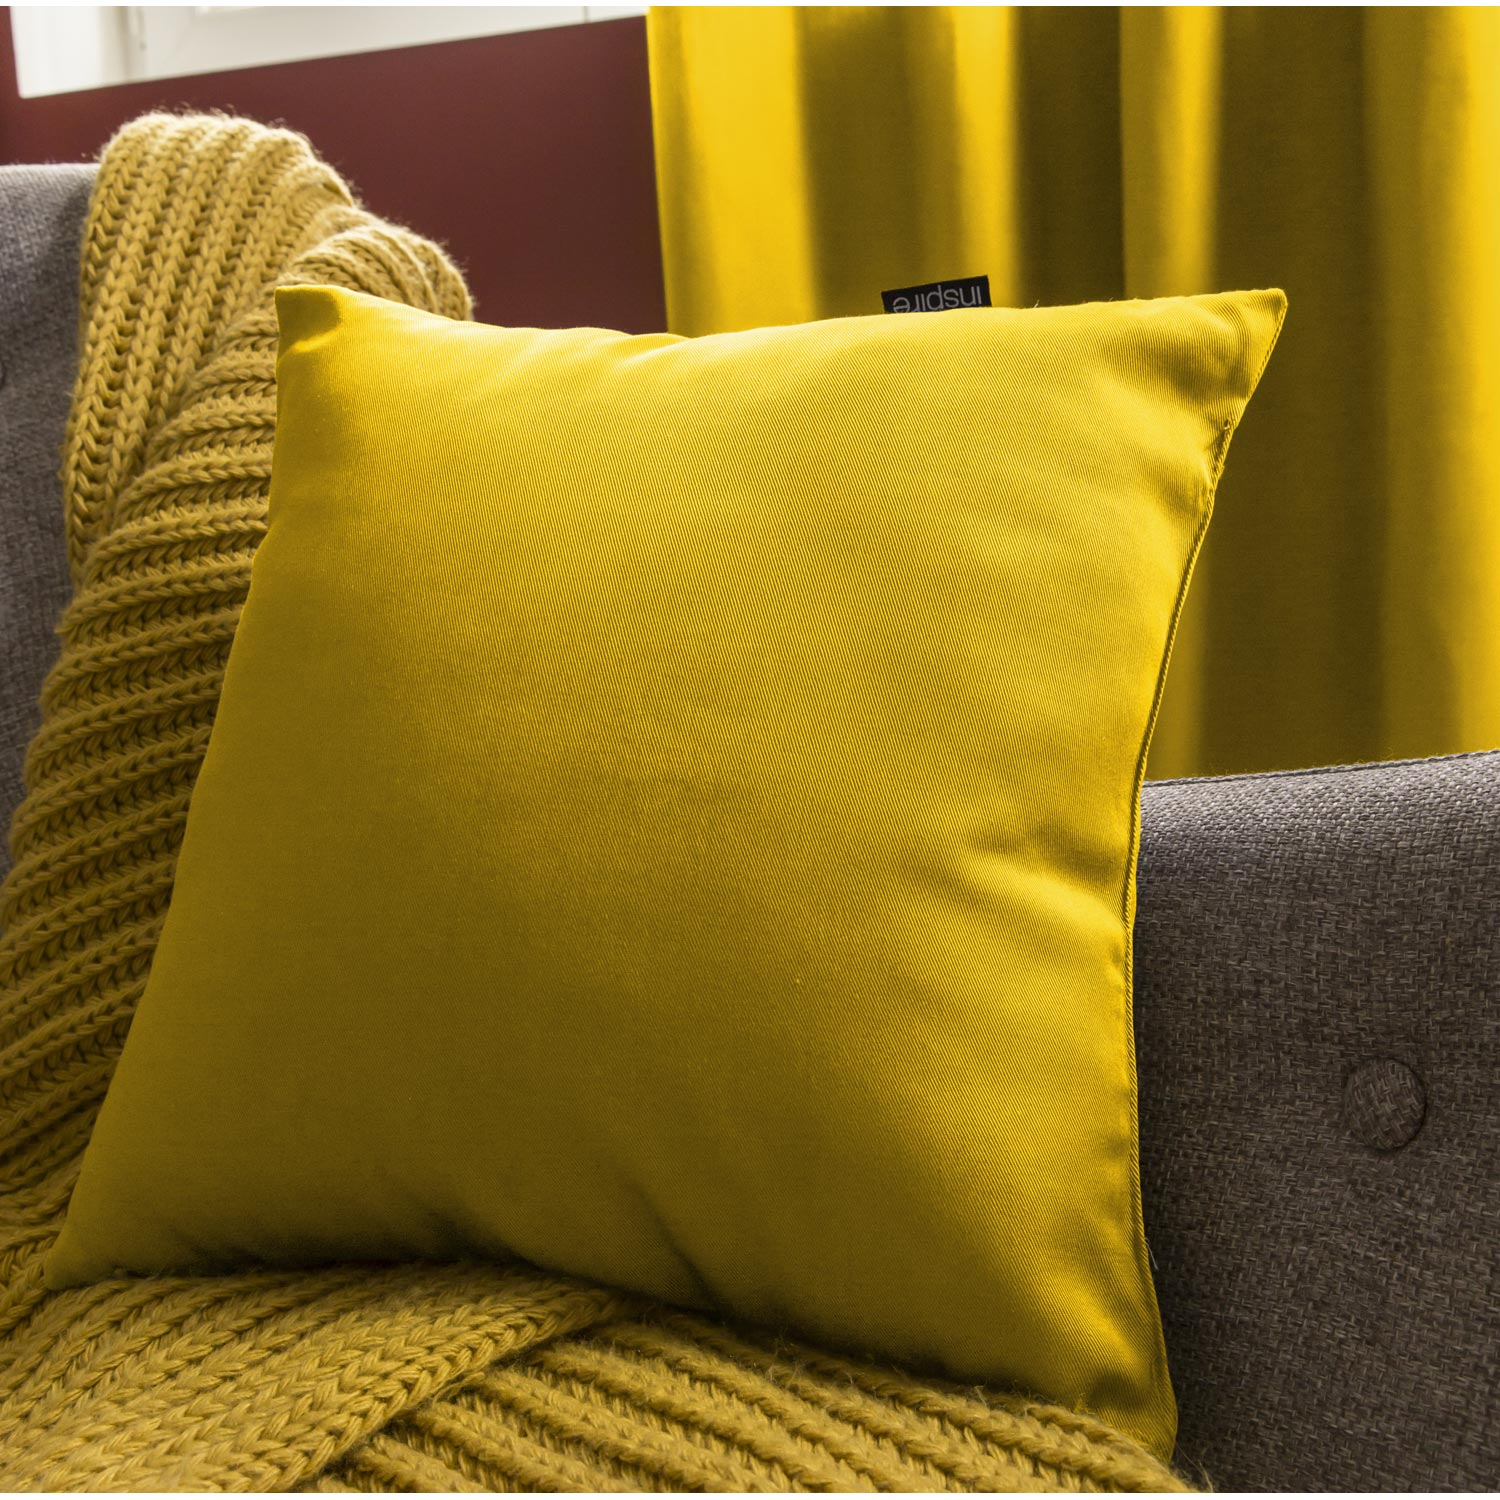 coussin 60x60 leroy merlin Coussin Roma INSPIRE, jaune anis n°4, l.35 x H.35 cm | Leroy Merlin coussin 60x60 leroy merlin